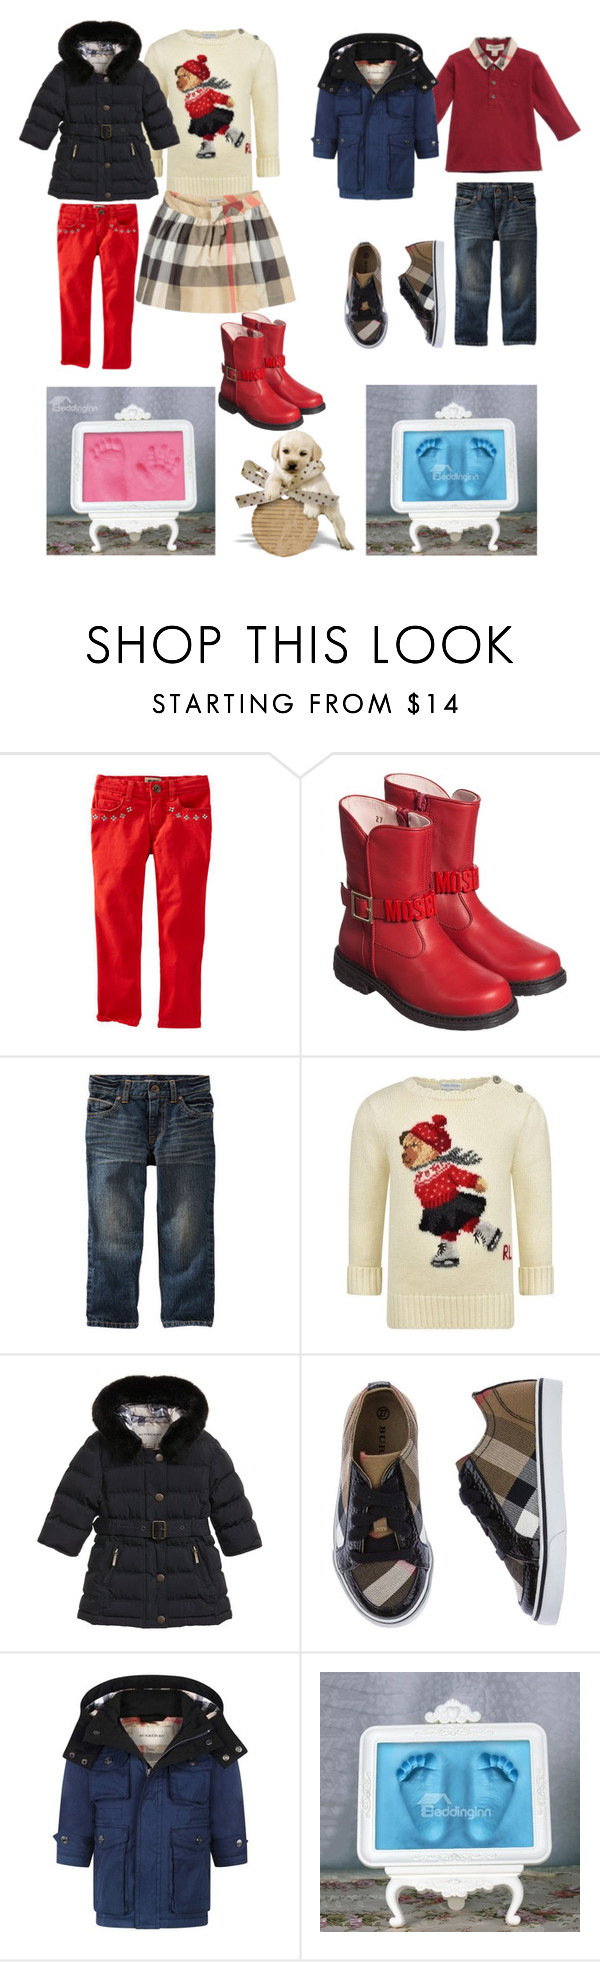 """""""Untitled #295"""" by liakmaria ❤ liked on Polyvore featuring Moschino, Burberry and Ralph Lauren"""